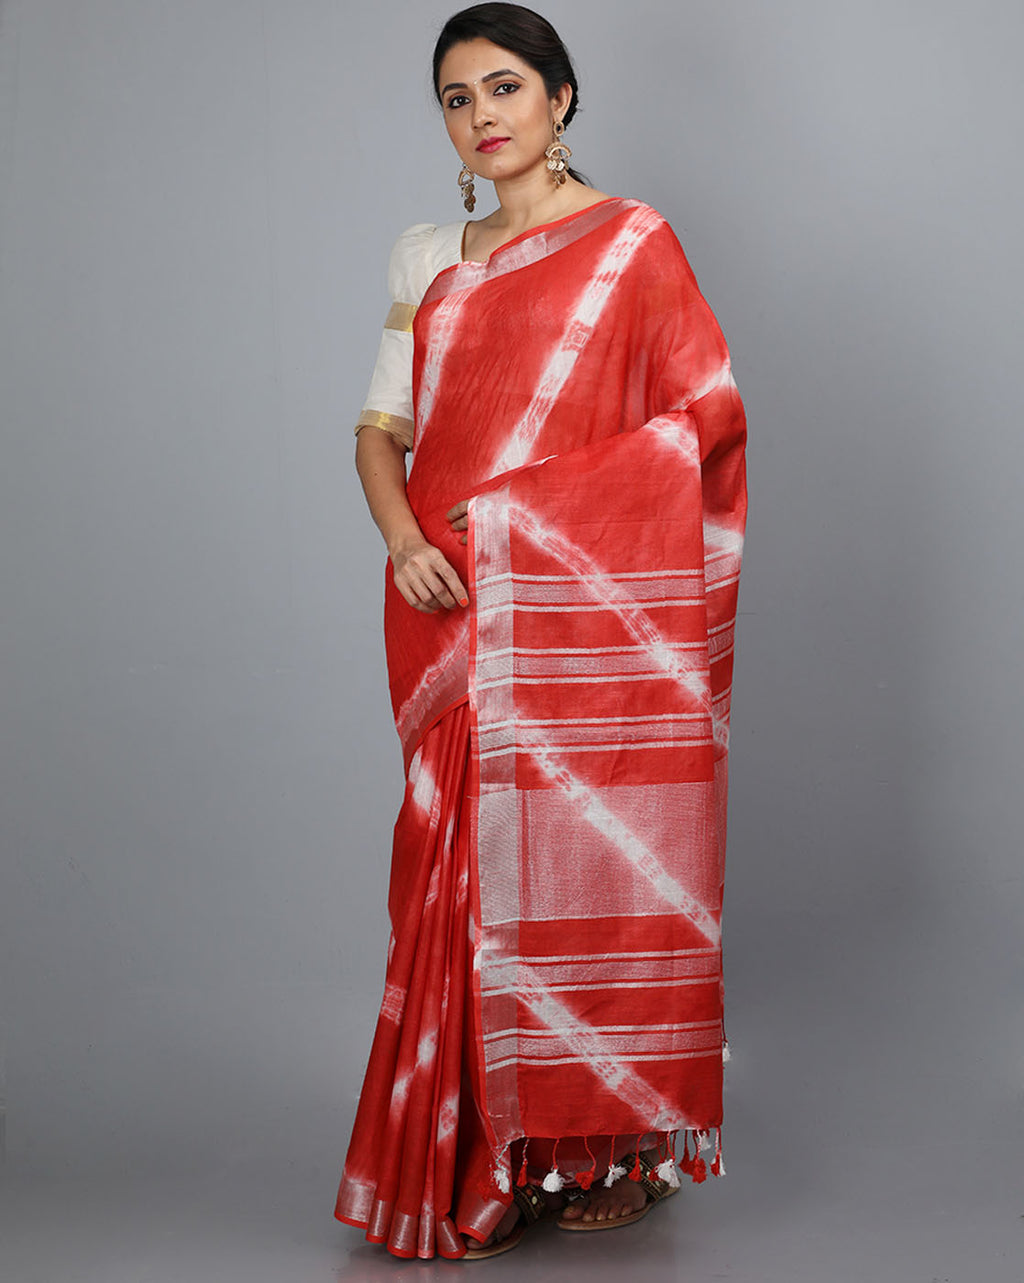 Bhagalpur Slub Shibori Saree - Red